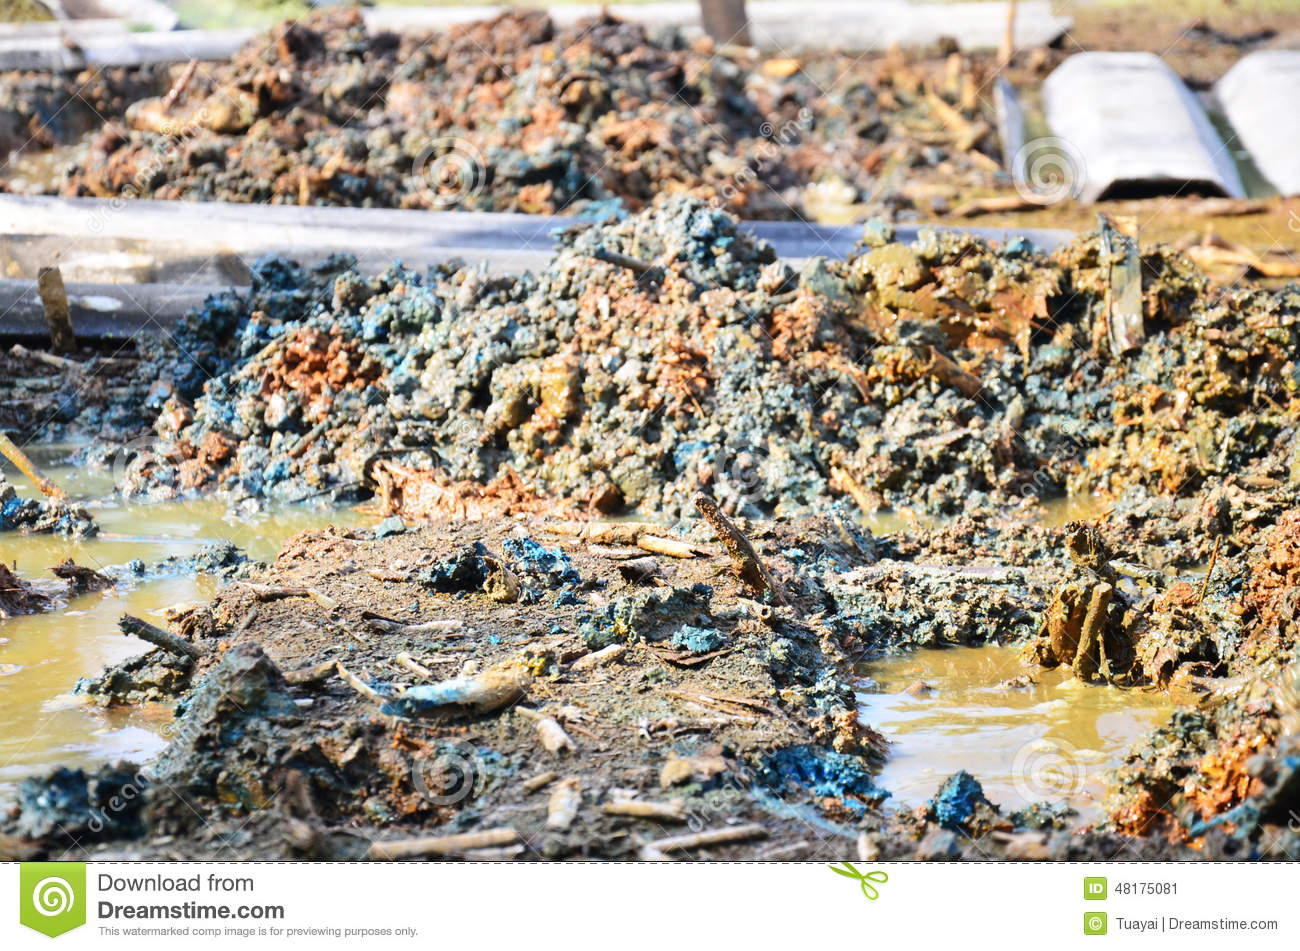 Effects environmental from chemicals and heavy metals in for What substances are in soil